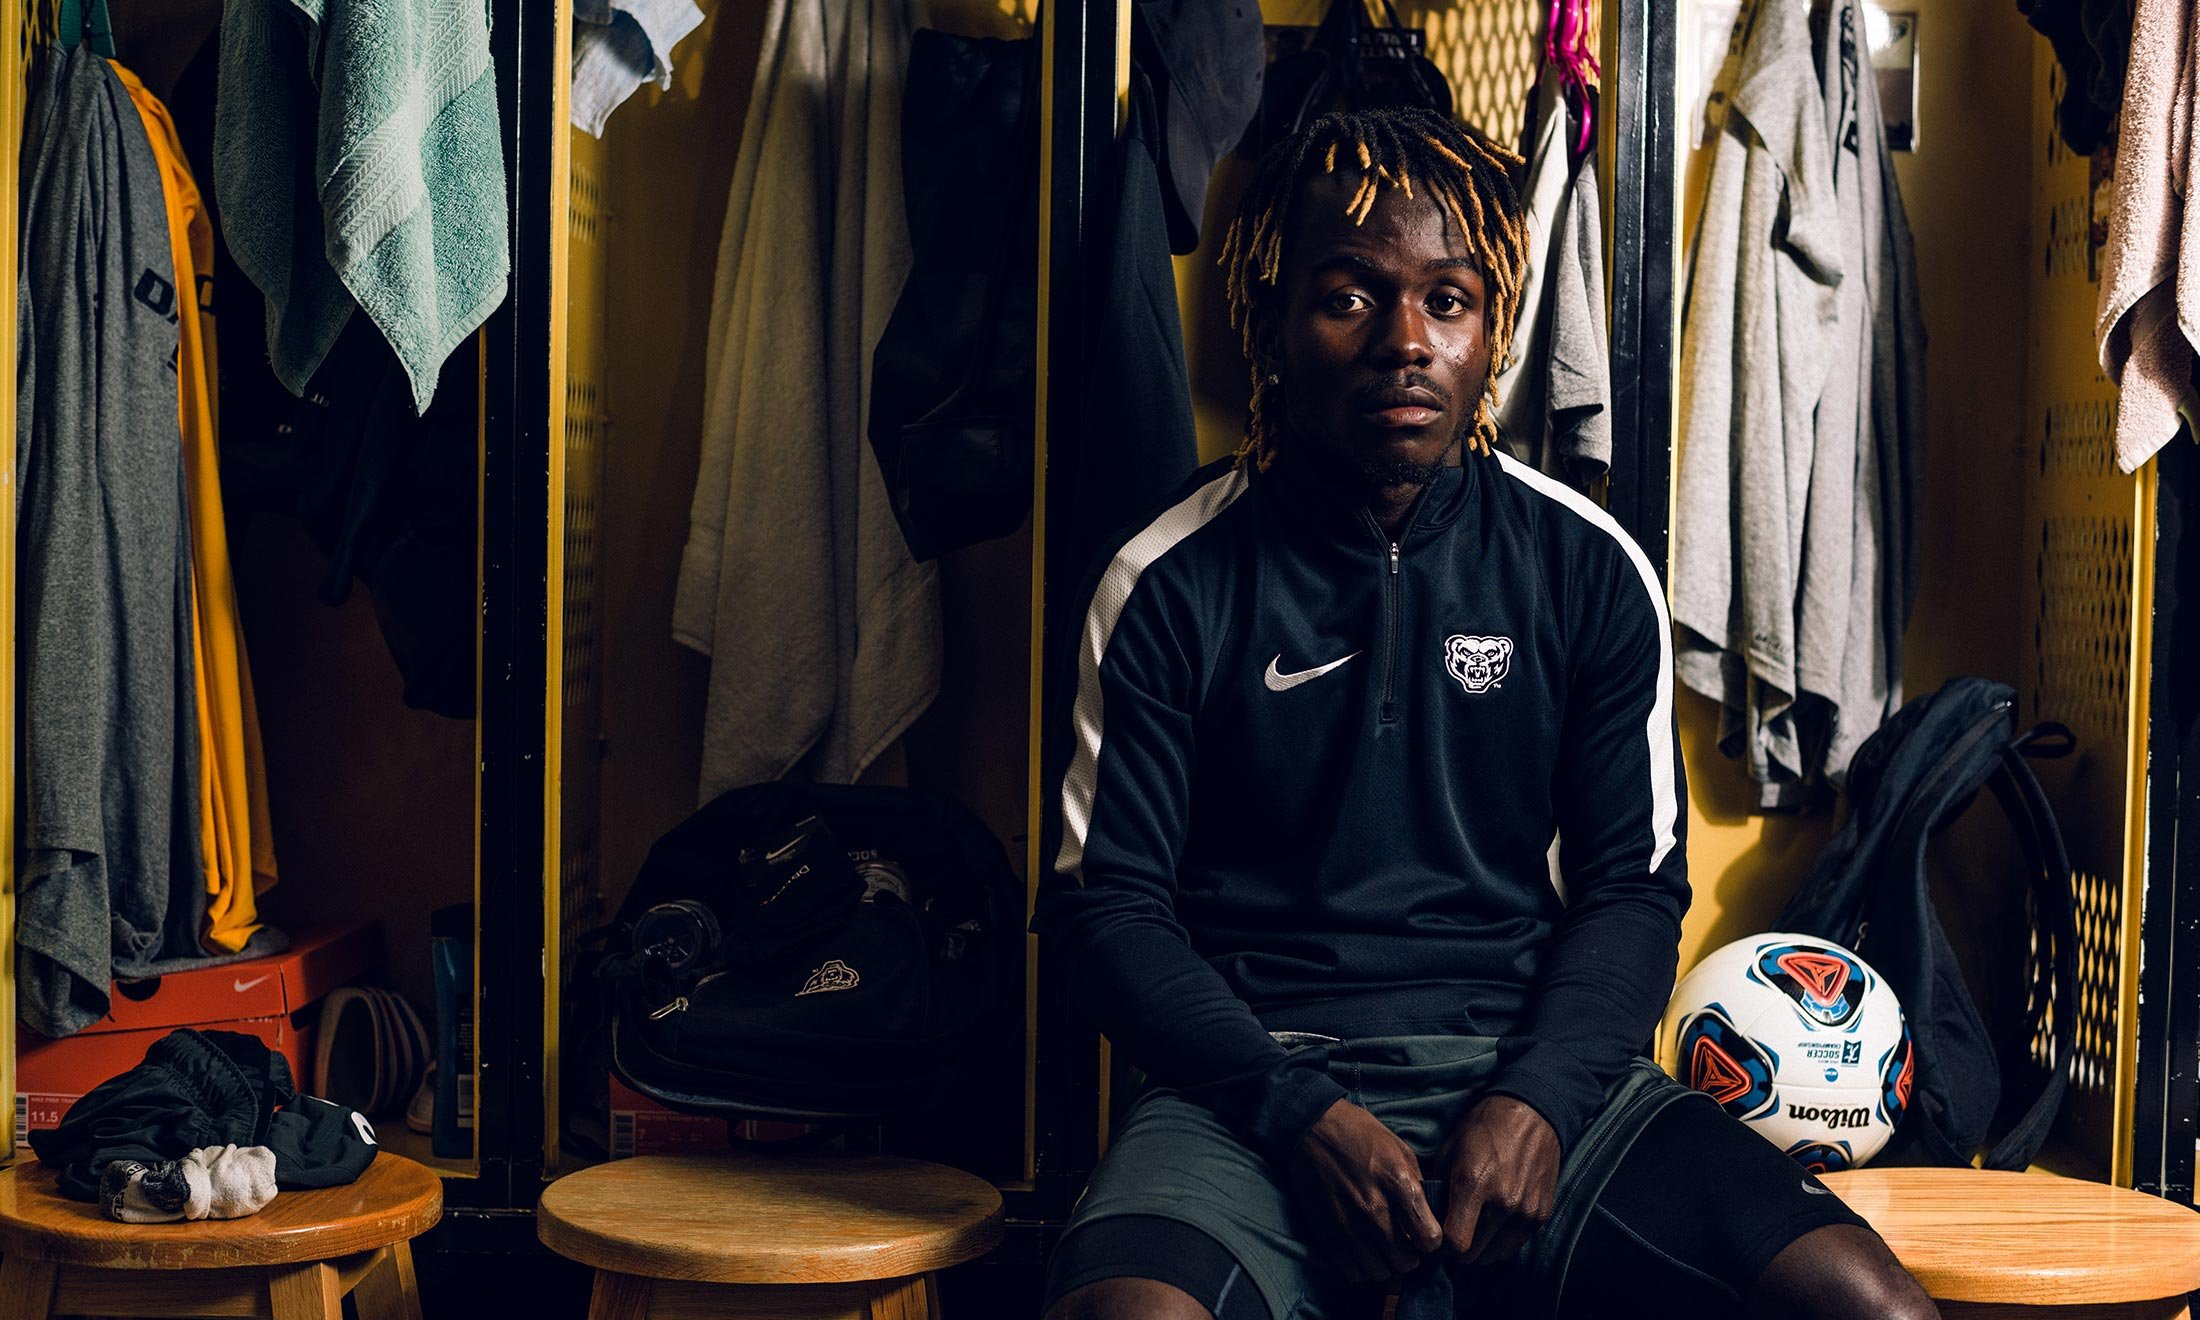 Oakland University soccer defender Wilfred Williams sits on a bench in the men's locker room with a soccer ball next to him with lockers and towels behind him